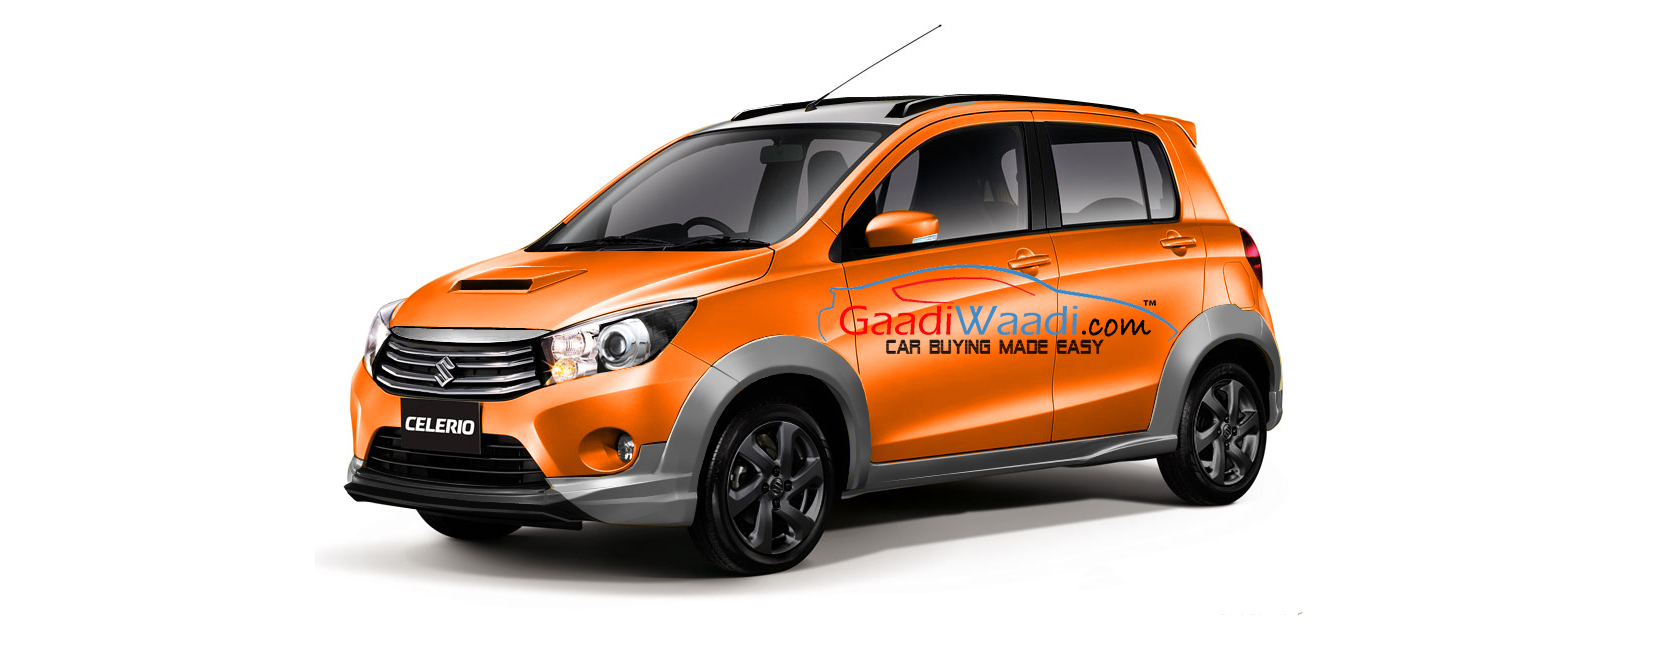 maruti celerio cross might turned into reality in delhi auto expo 2016